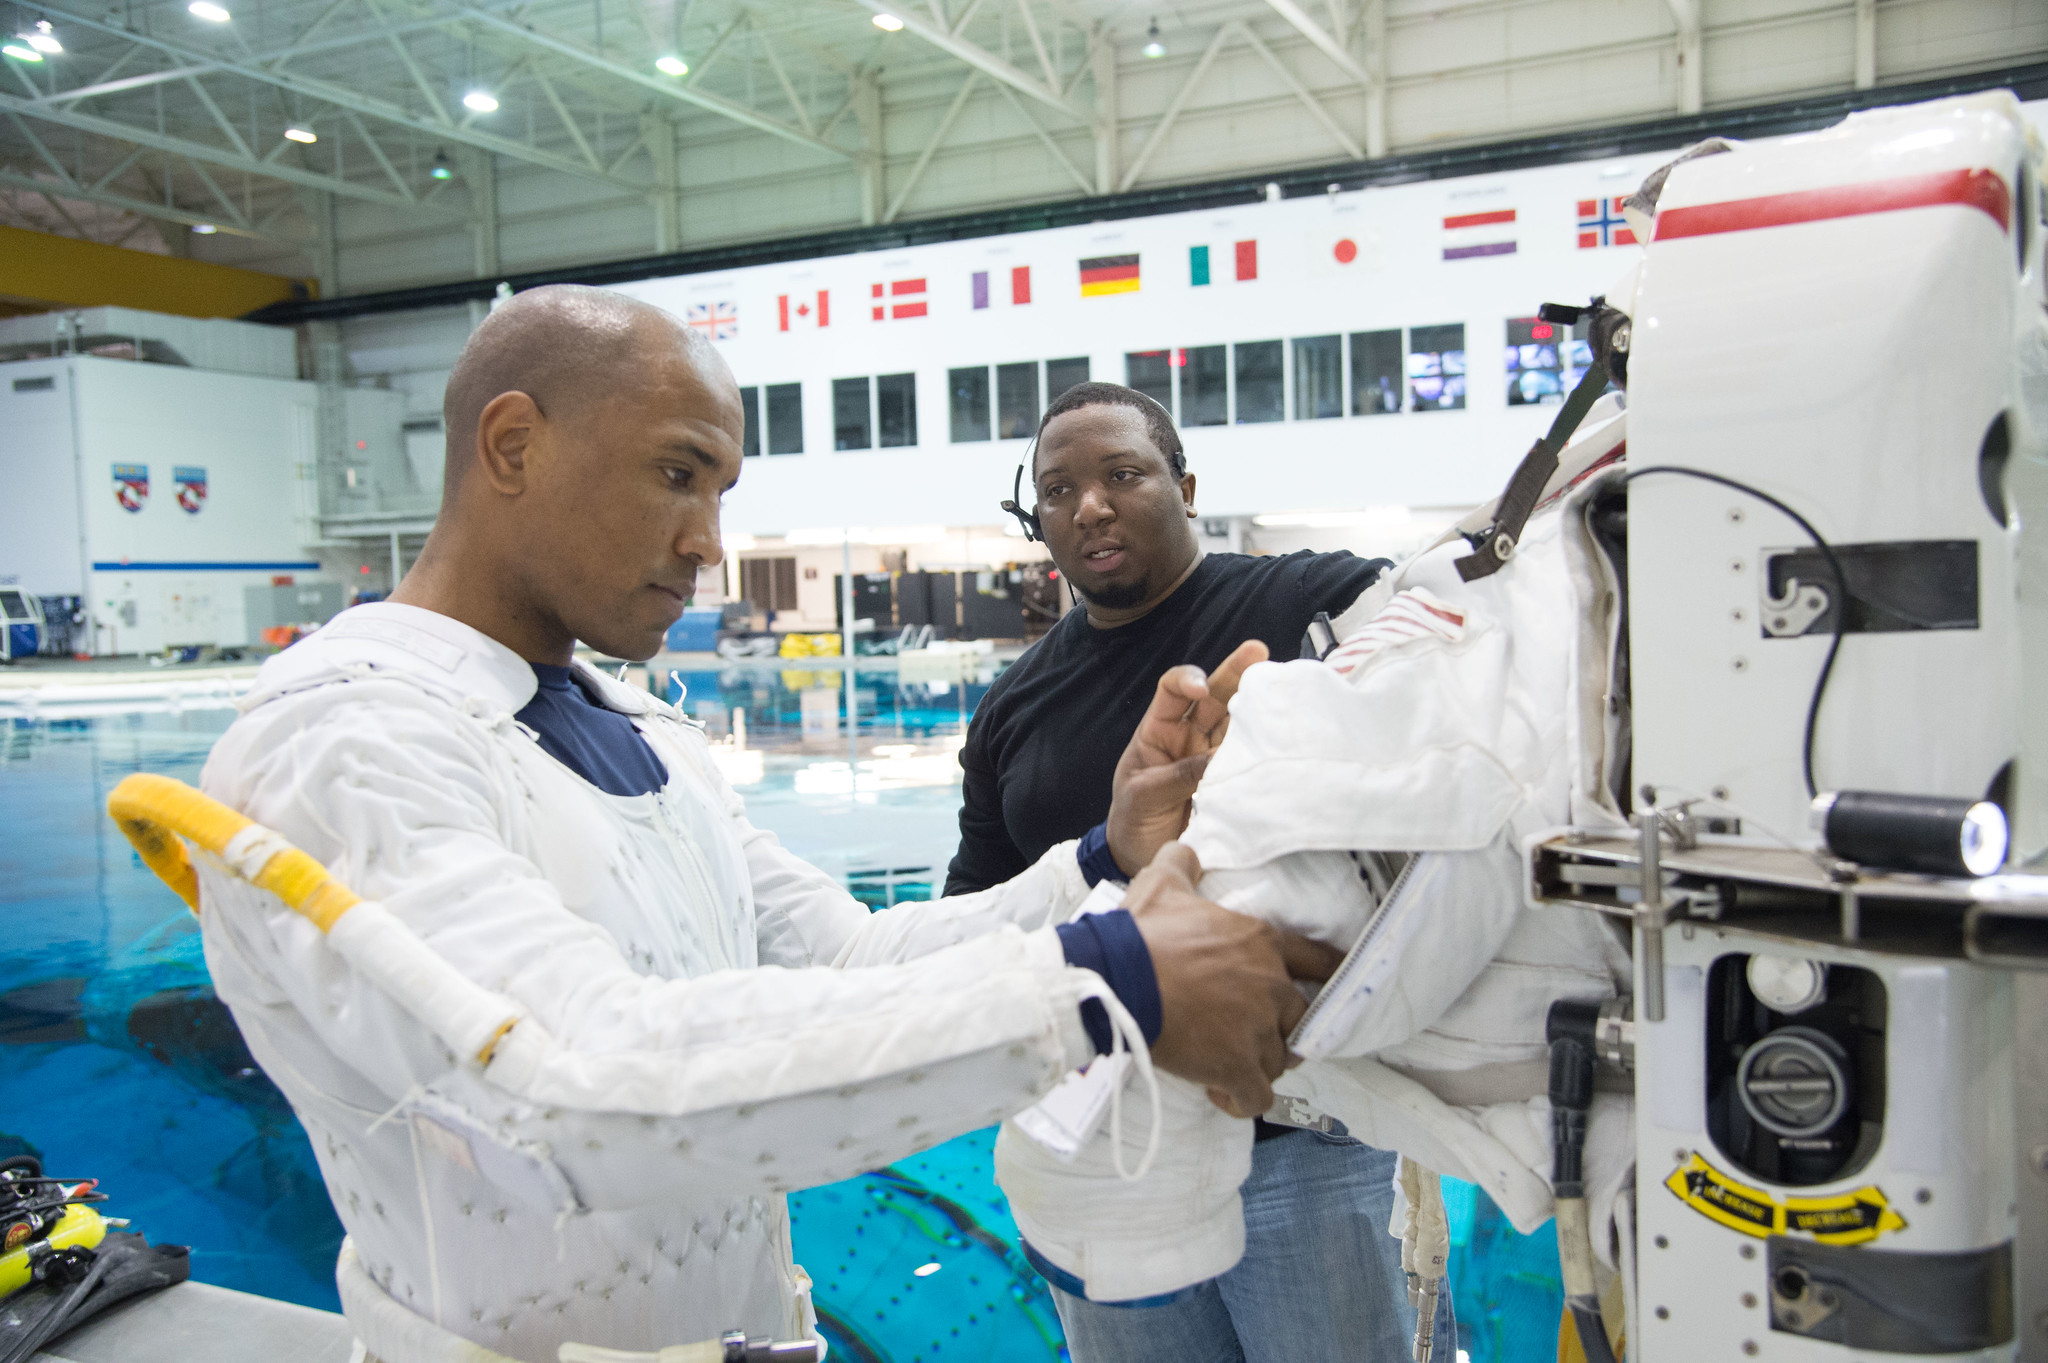 Glover in a white suit connected to a measuring device by tubes works with a technician in front of a large indoor pool.